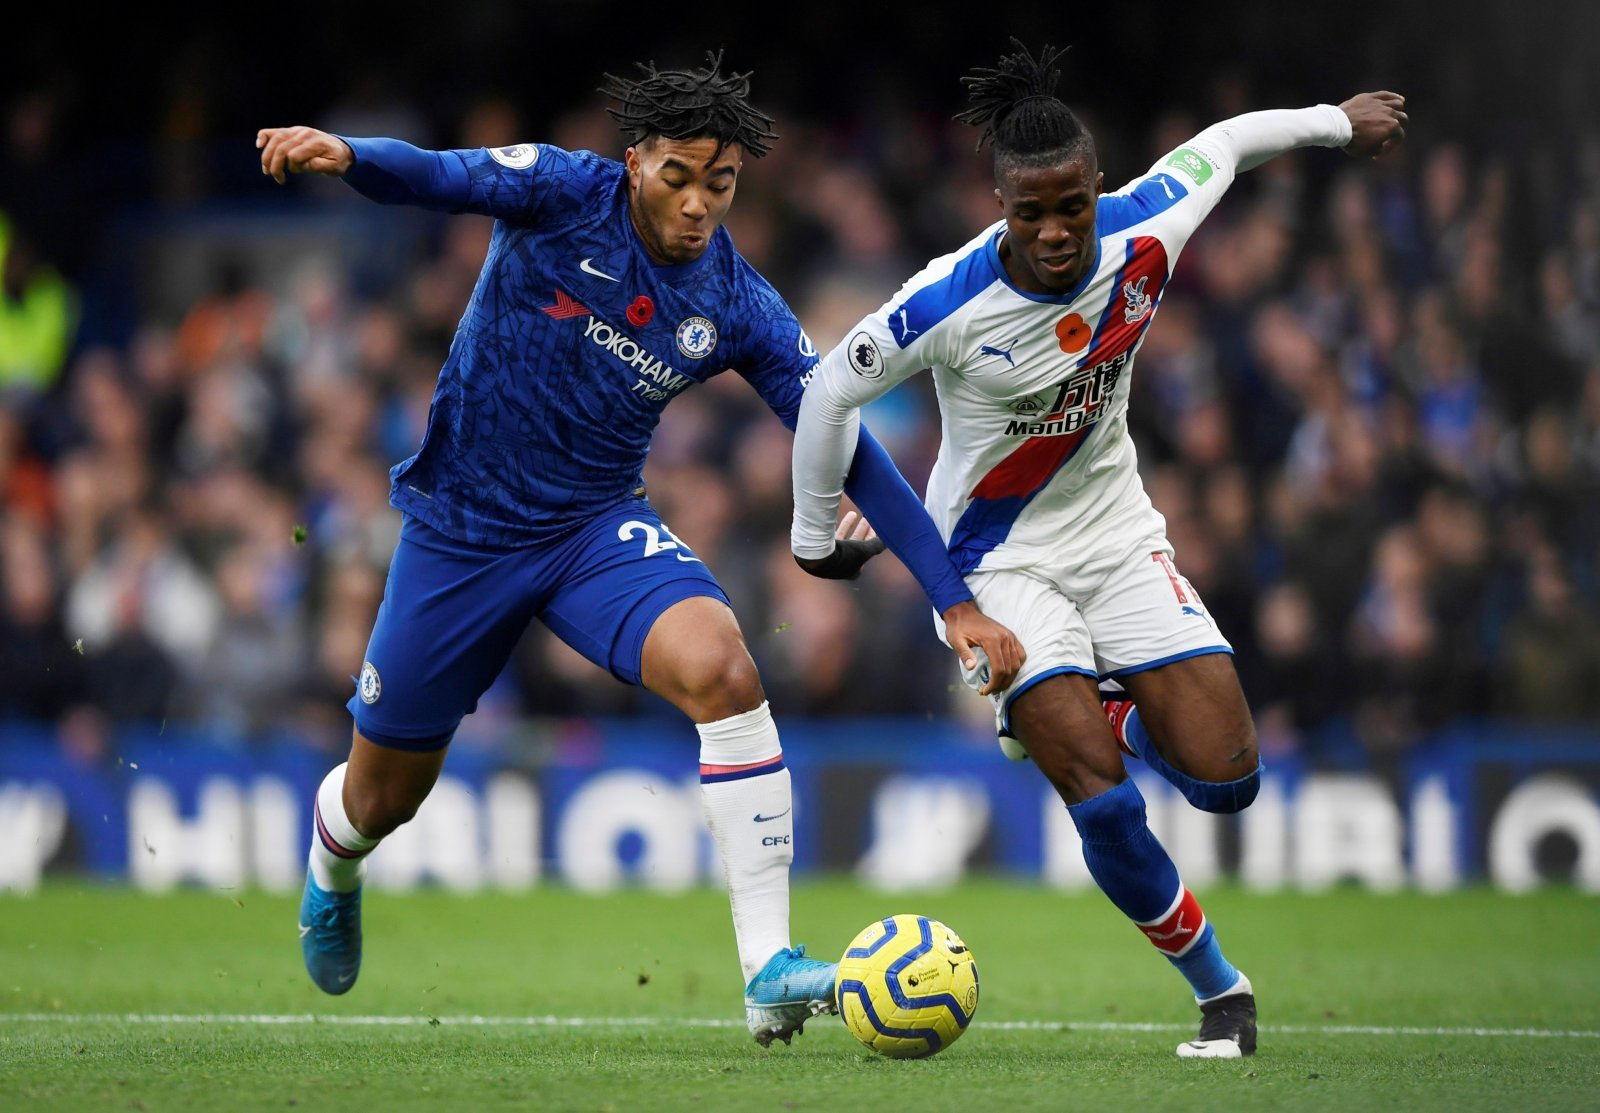 Crystal Palace: Chelsea fans stick boot in on Zaha on his special day